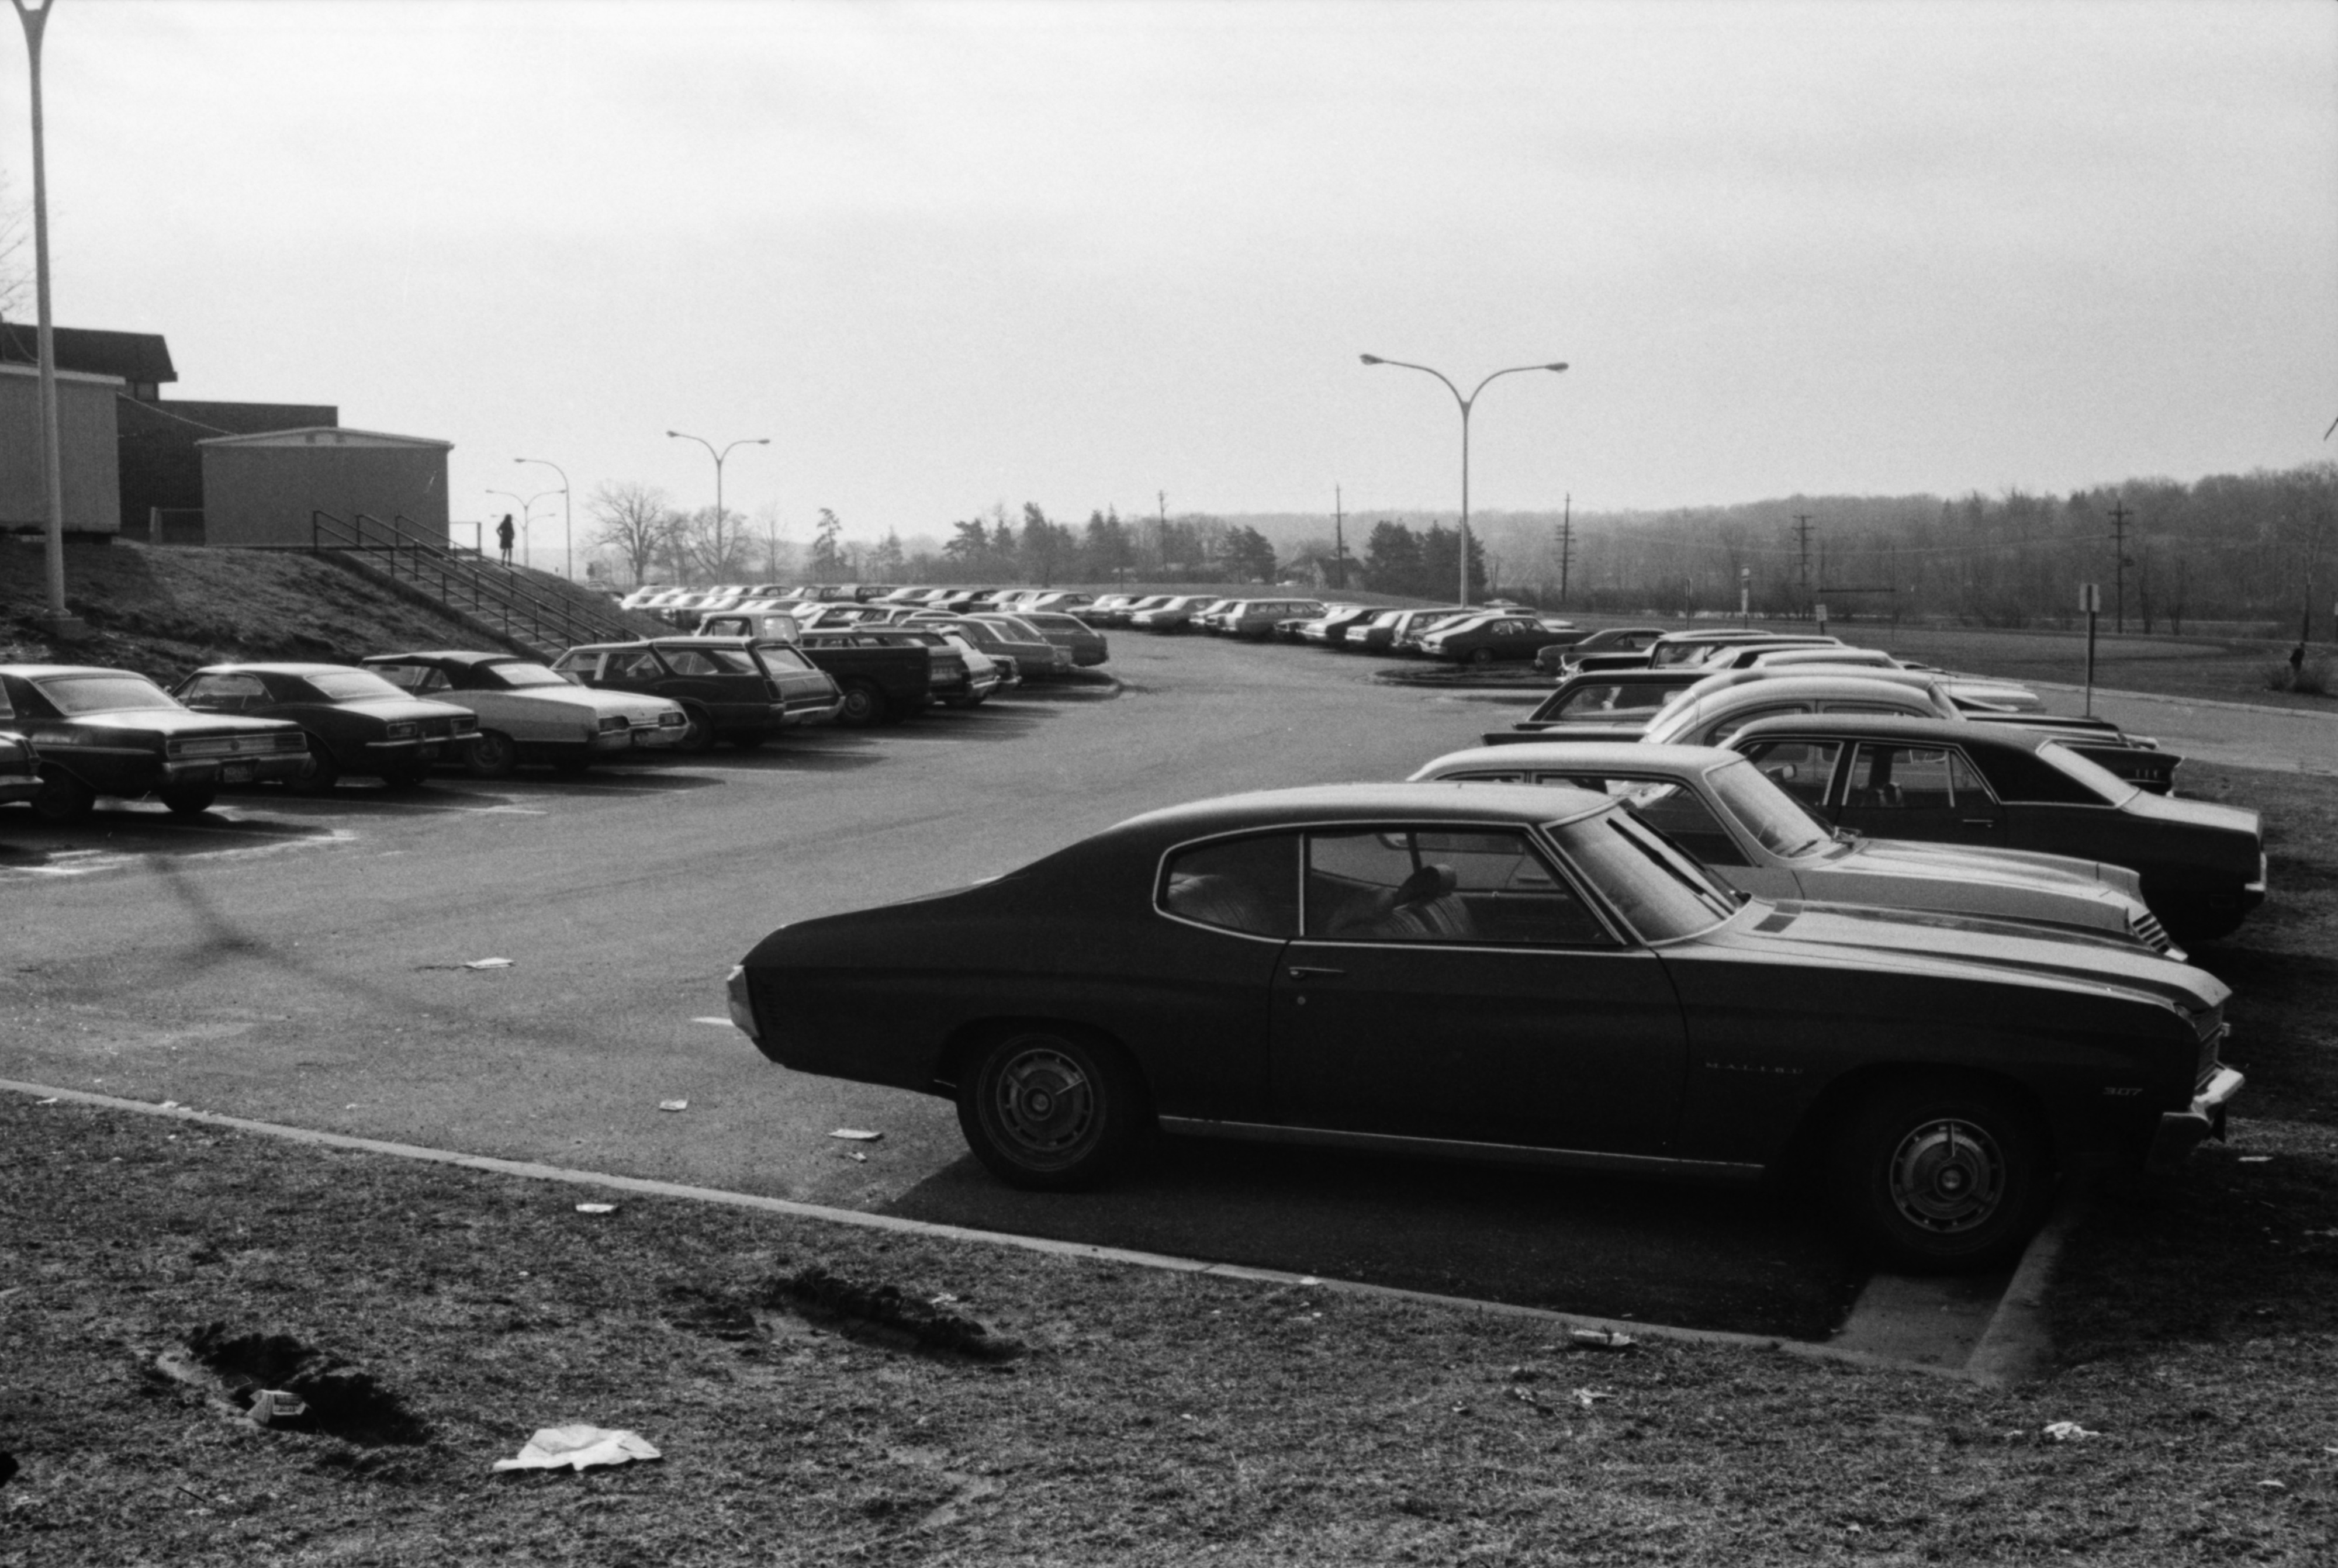 Full Parking Lot at Huron High, March 1974 image